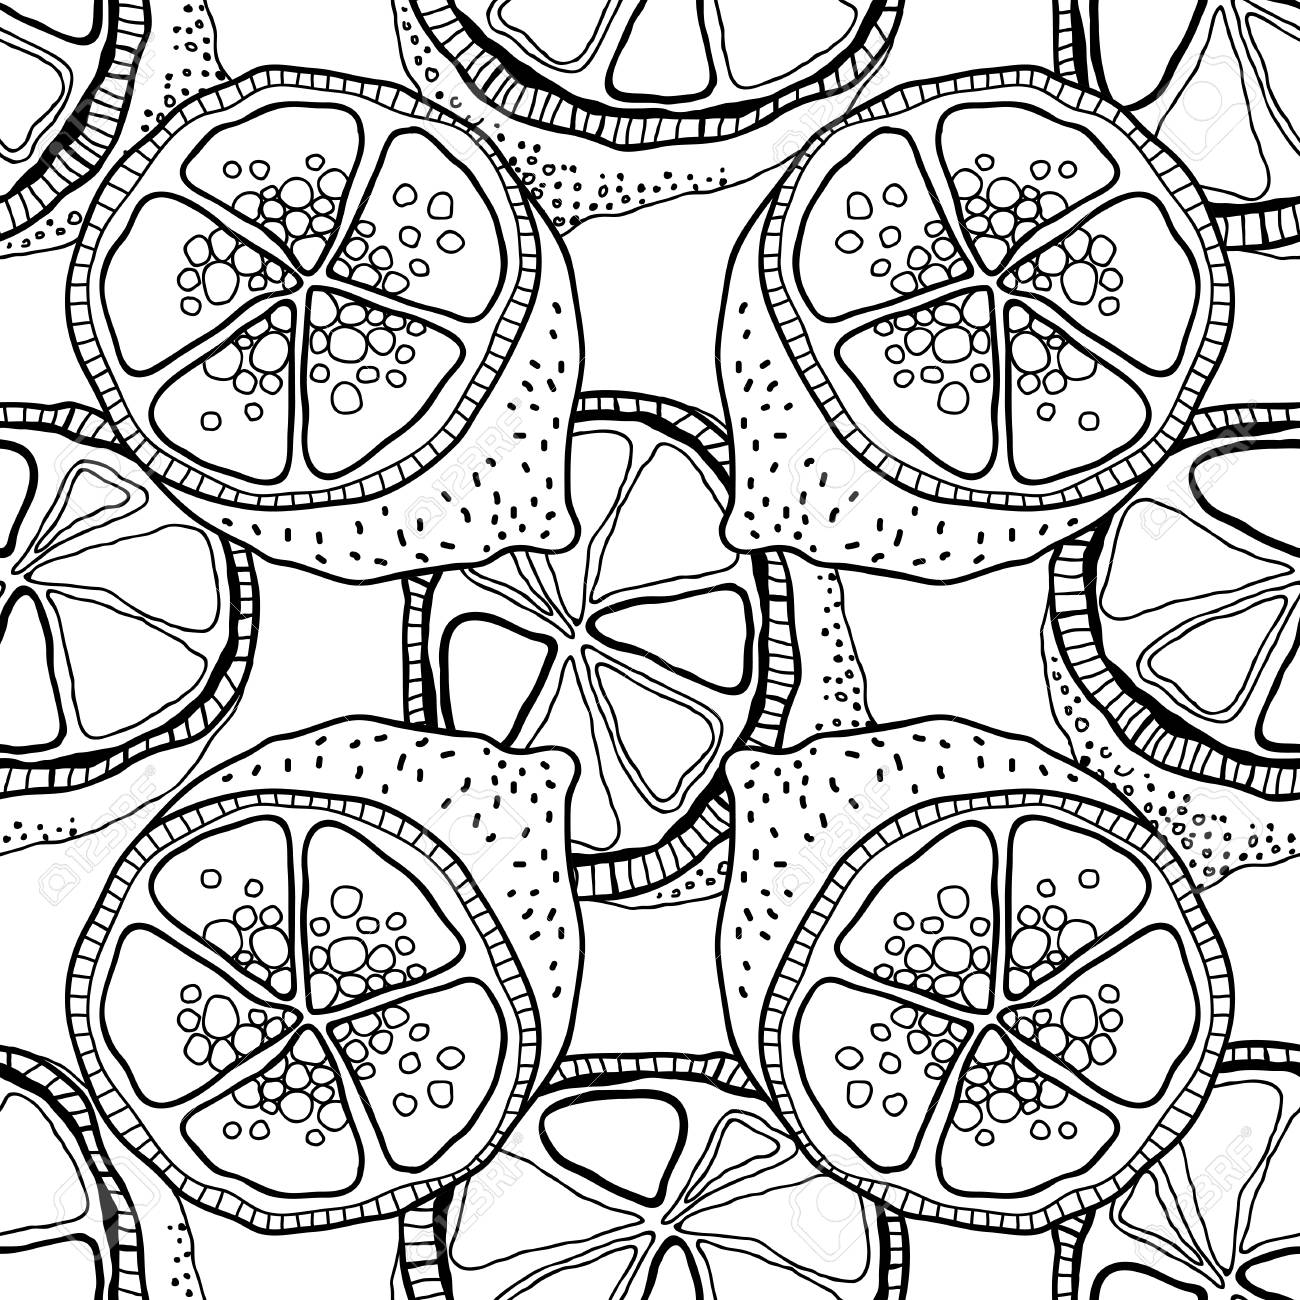 Cahier Coloriage Fruits.Tranches De Citrons Modele Sans Couture Avec Fruits Dessines A La